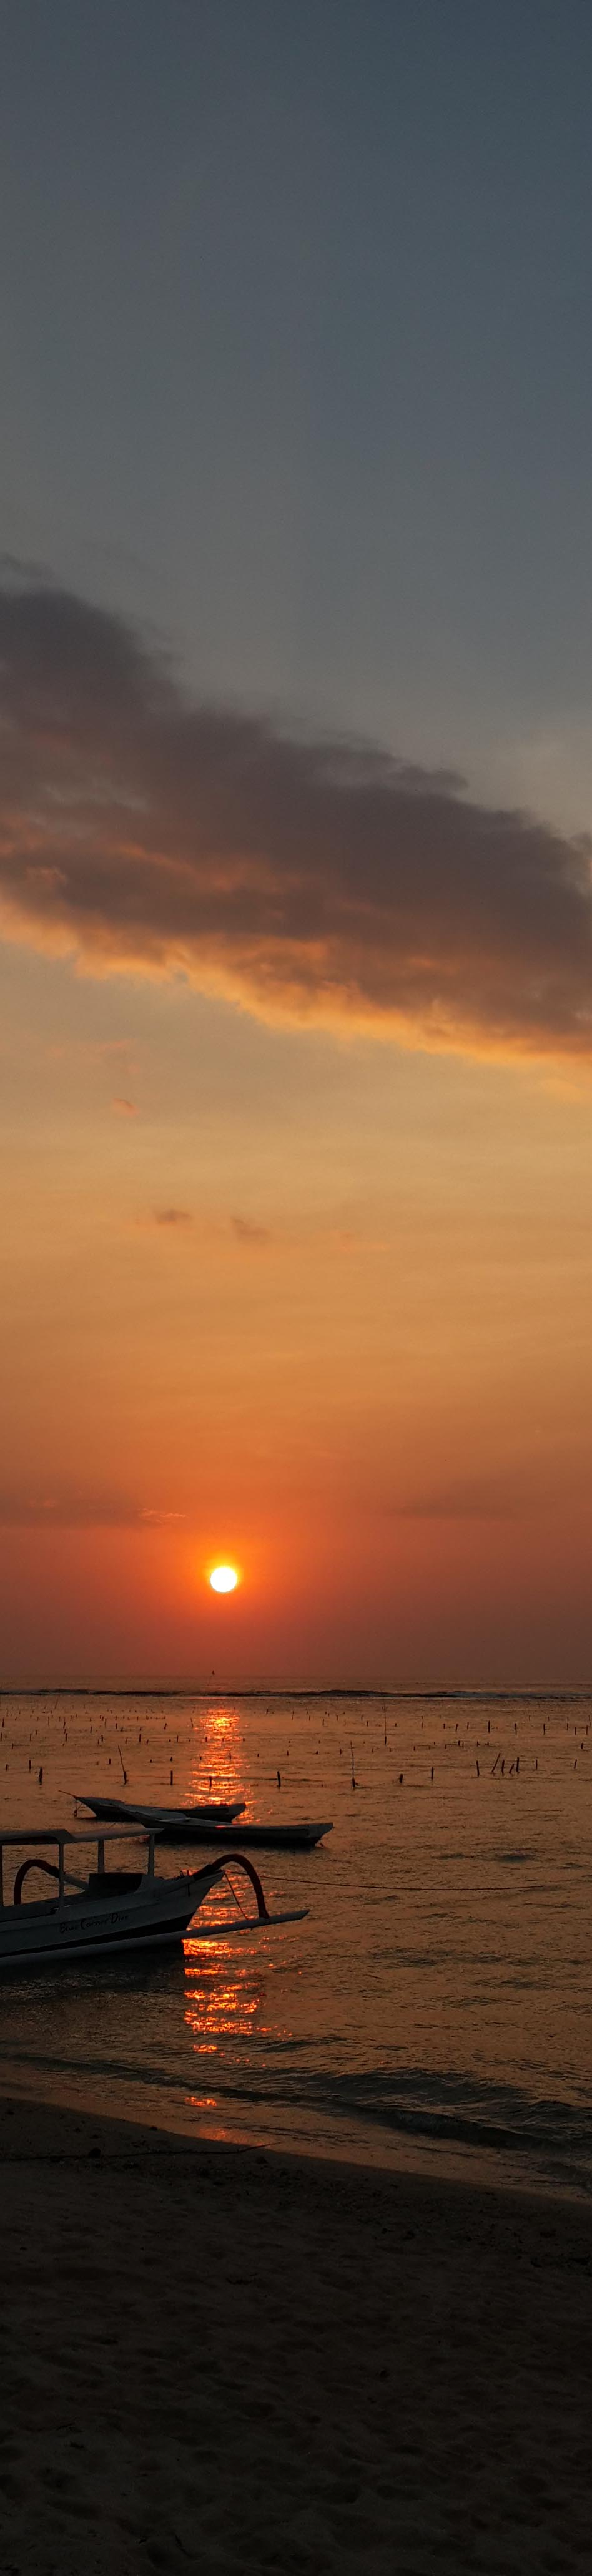 vertical sunset.jpg